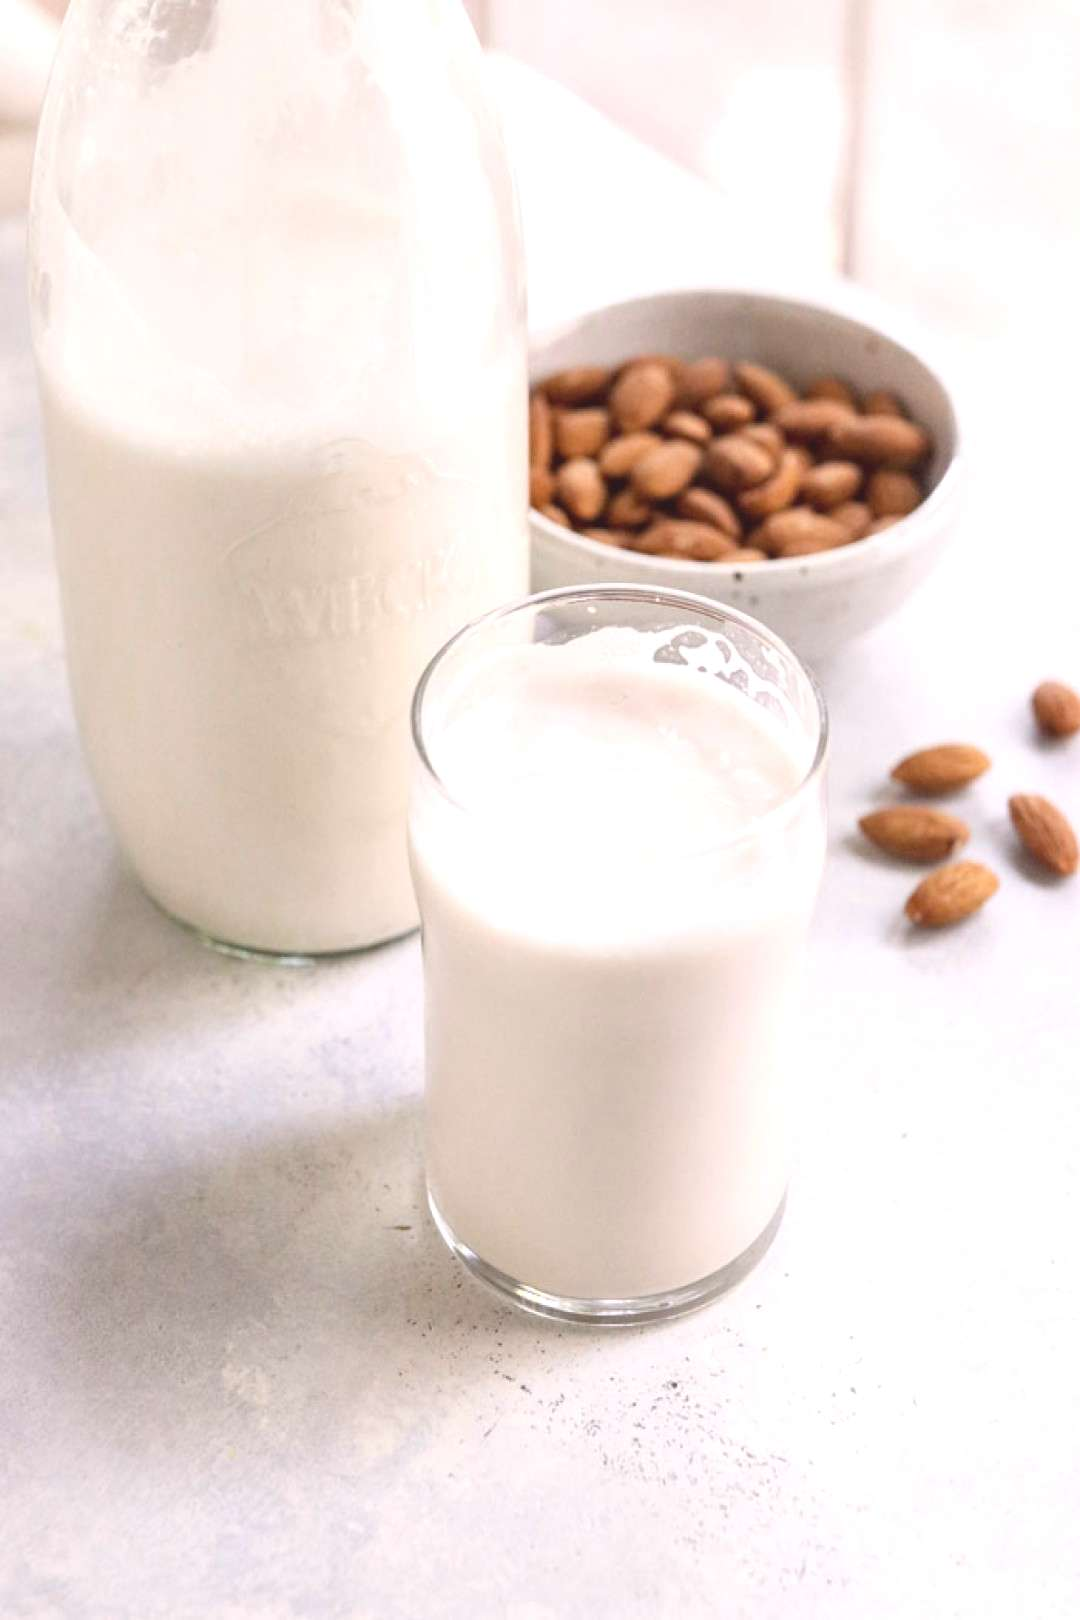 Here's how to make Almond Milk that tastes better than the store-bought version! All you need is 2